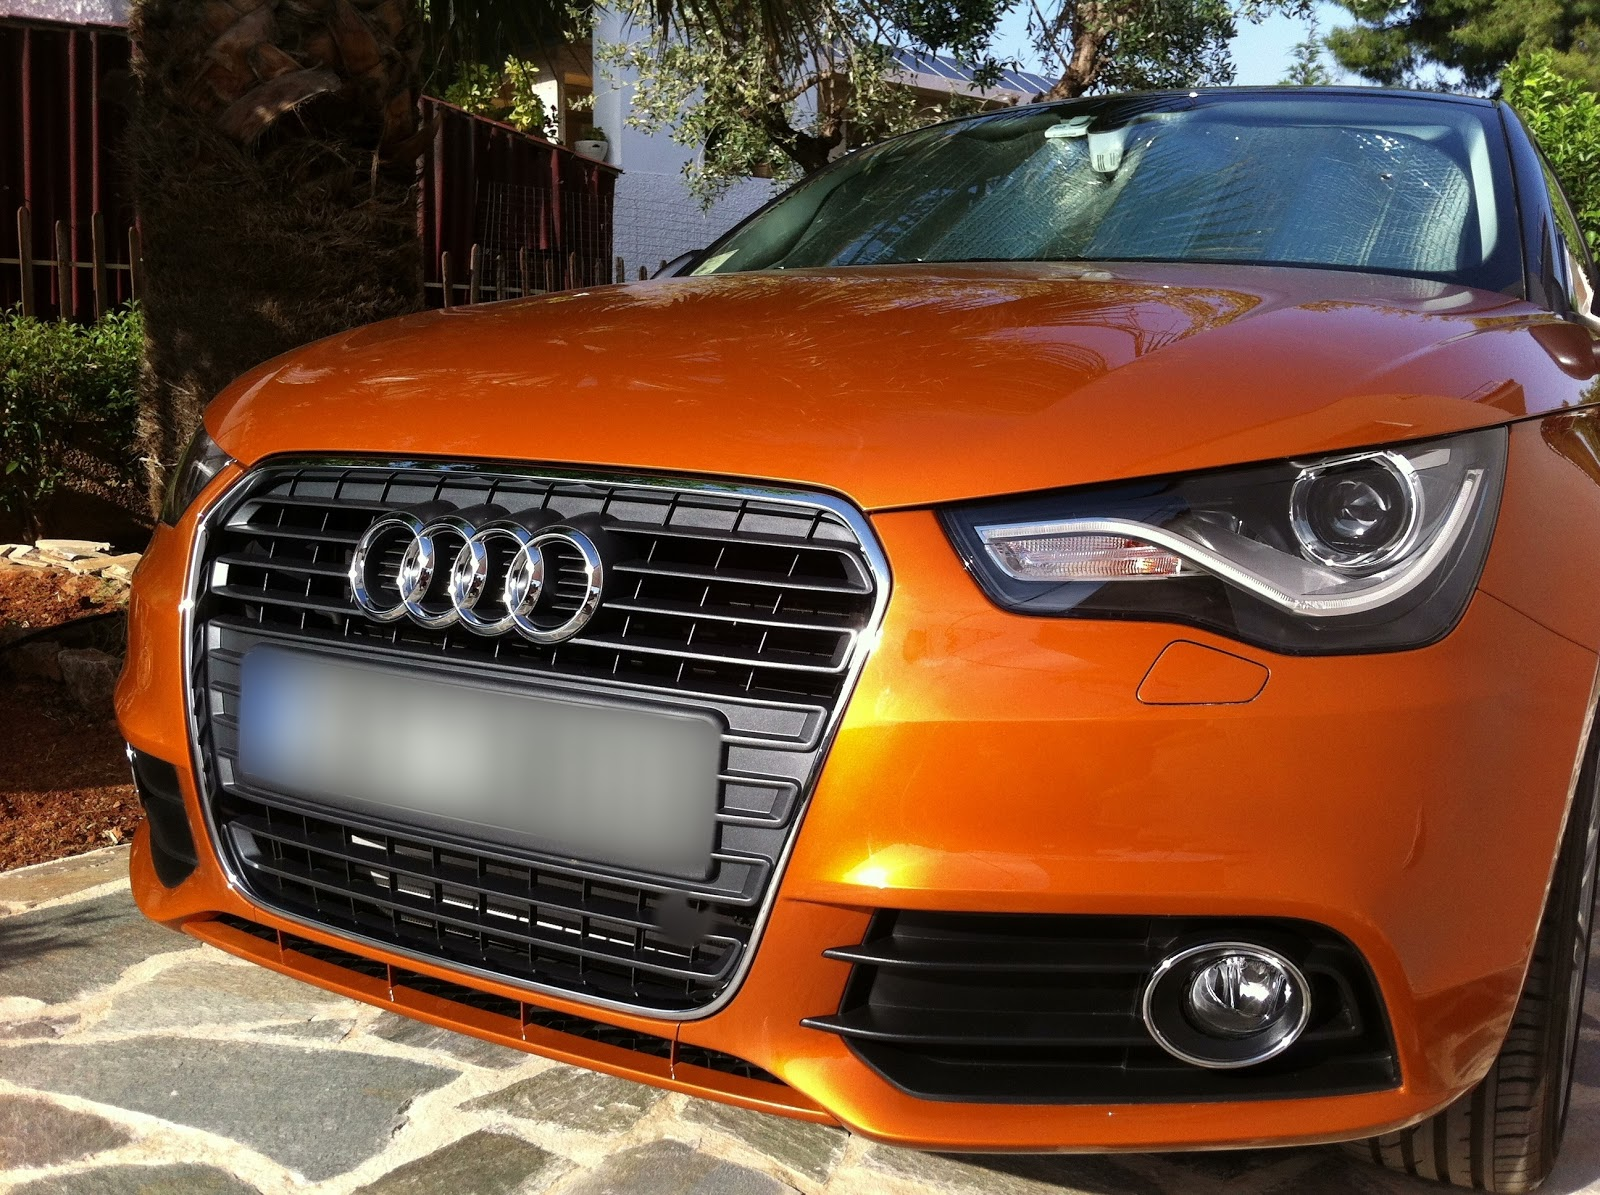 Audi+A1+Samoa+Orange+Daytona+Grey++10.jp